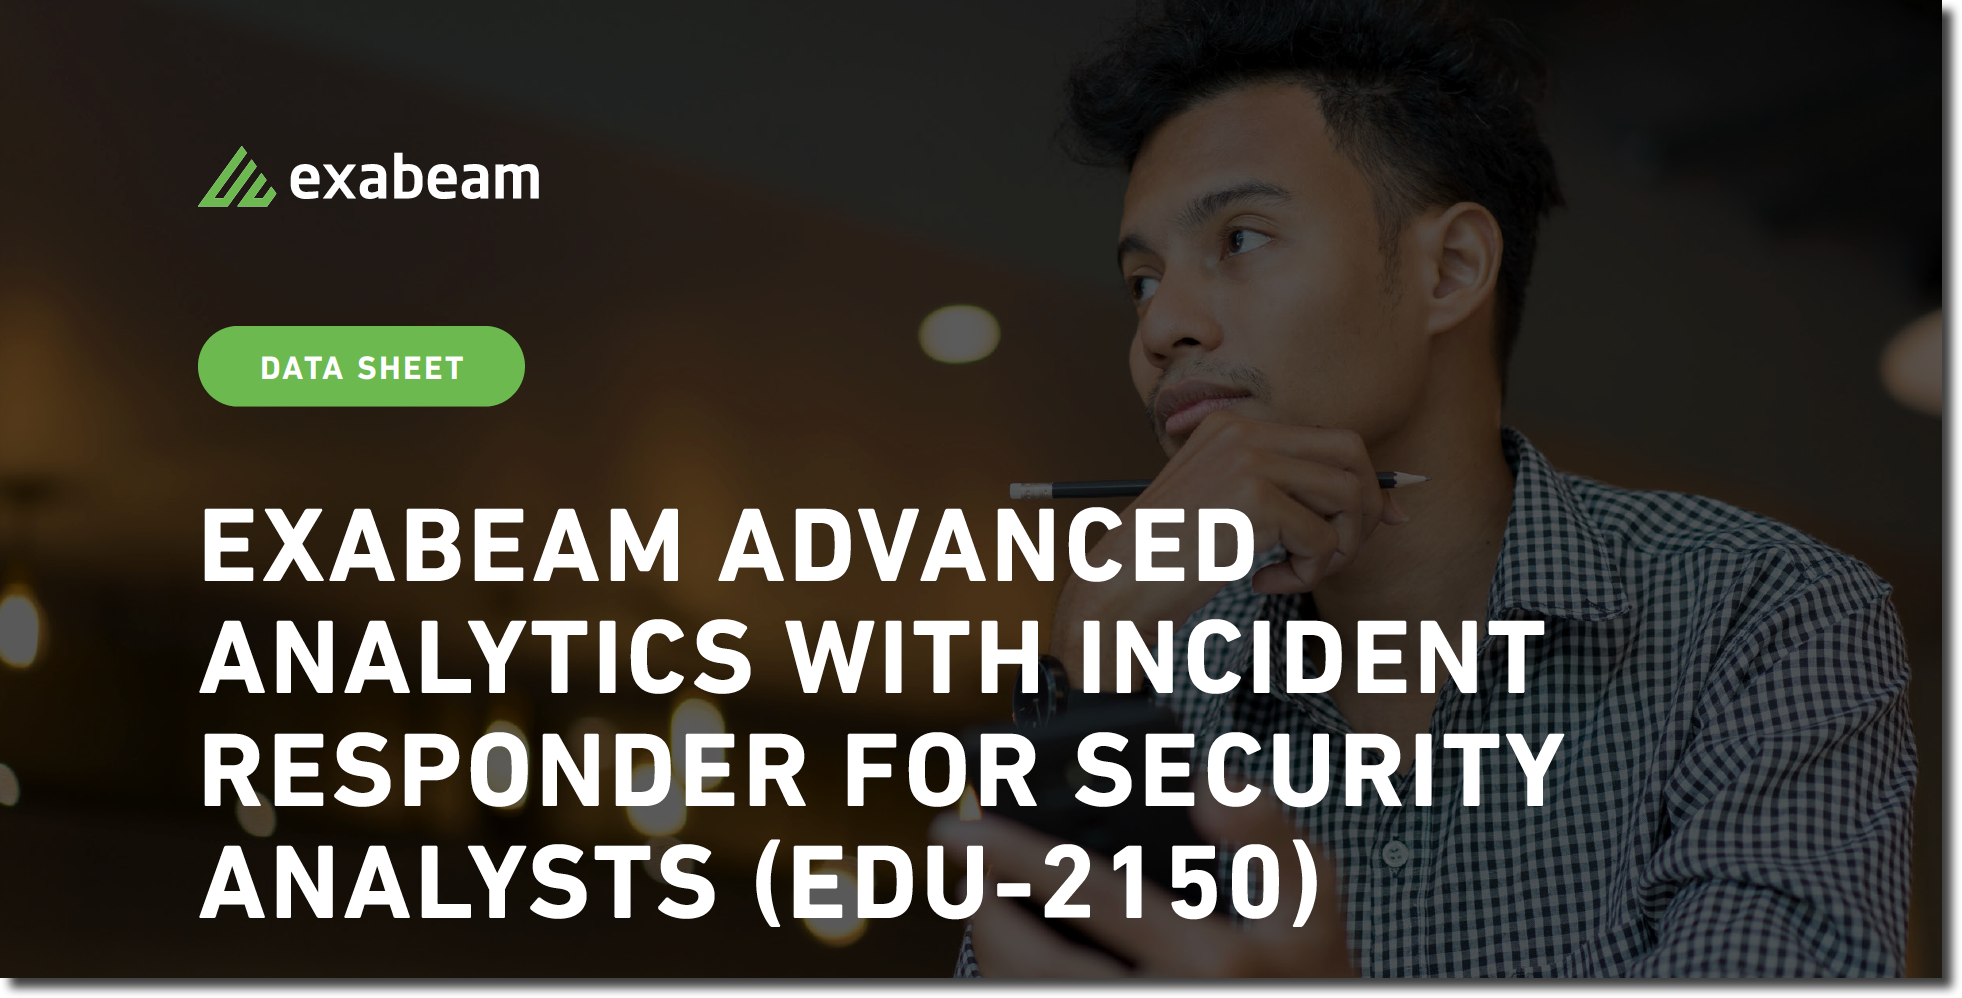 EXABEAM ADVANCED ANALYTICS WITH INCIDENT RESPONDER FOR SECURITY ANALYSTS (EDU-2150) DATASHEET